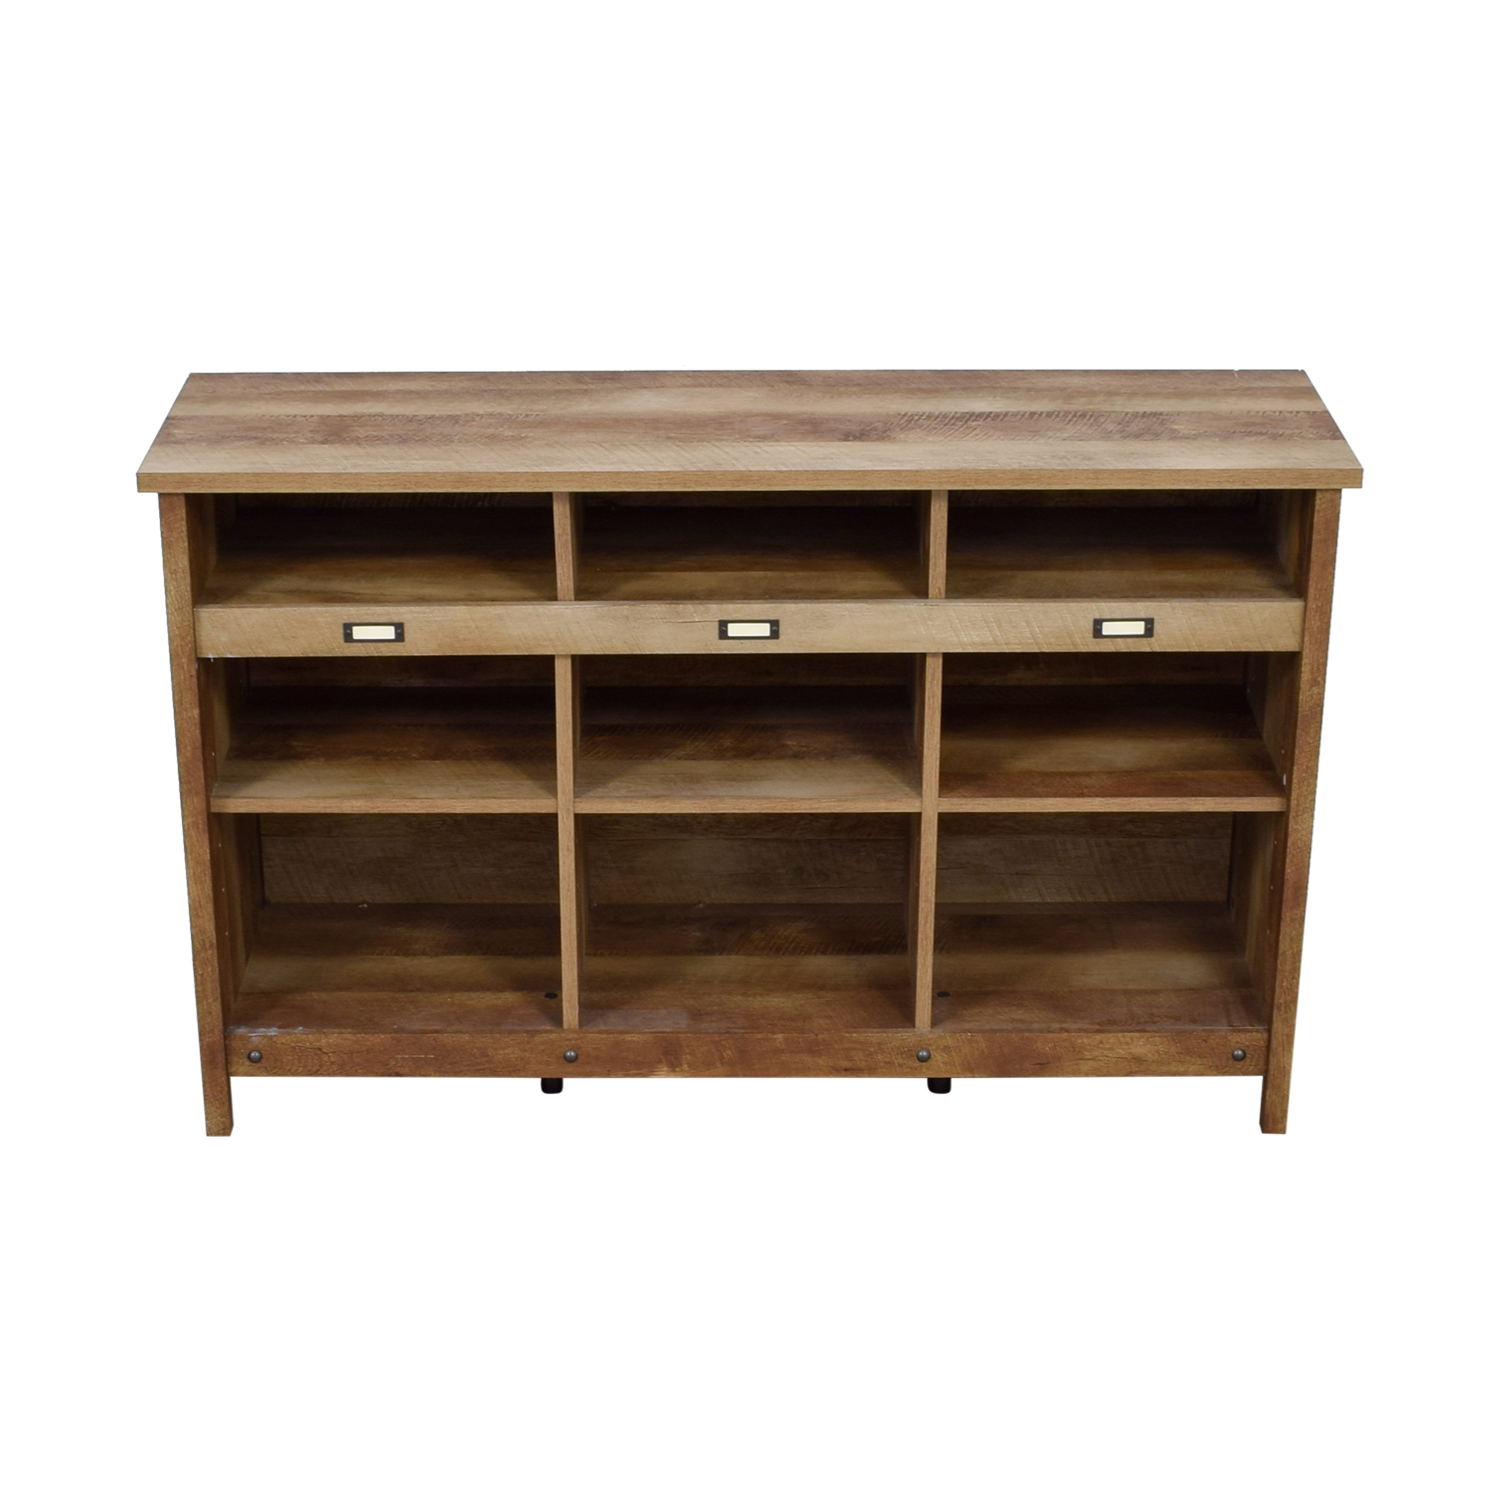 Birch Lane Birch Lane Orville Raw Wood Cube Unit Bookcase nyc